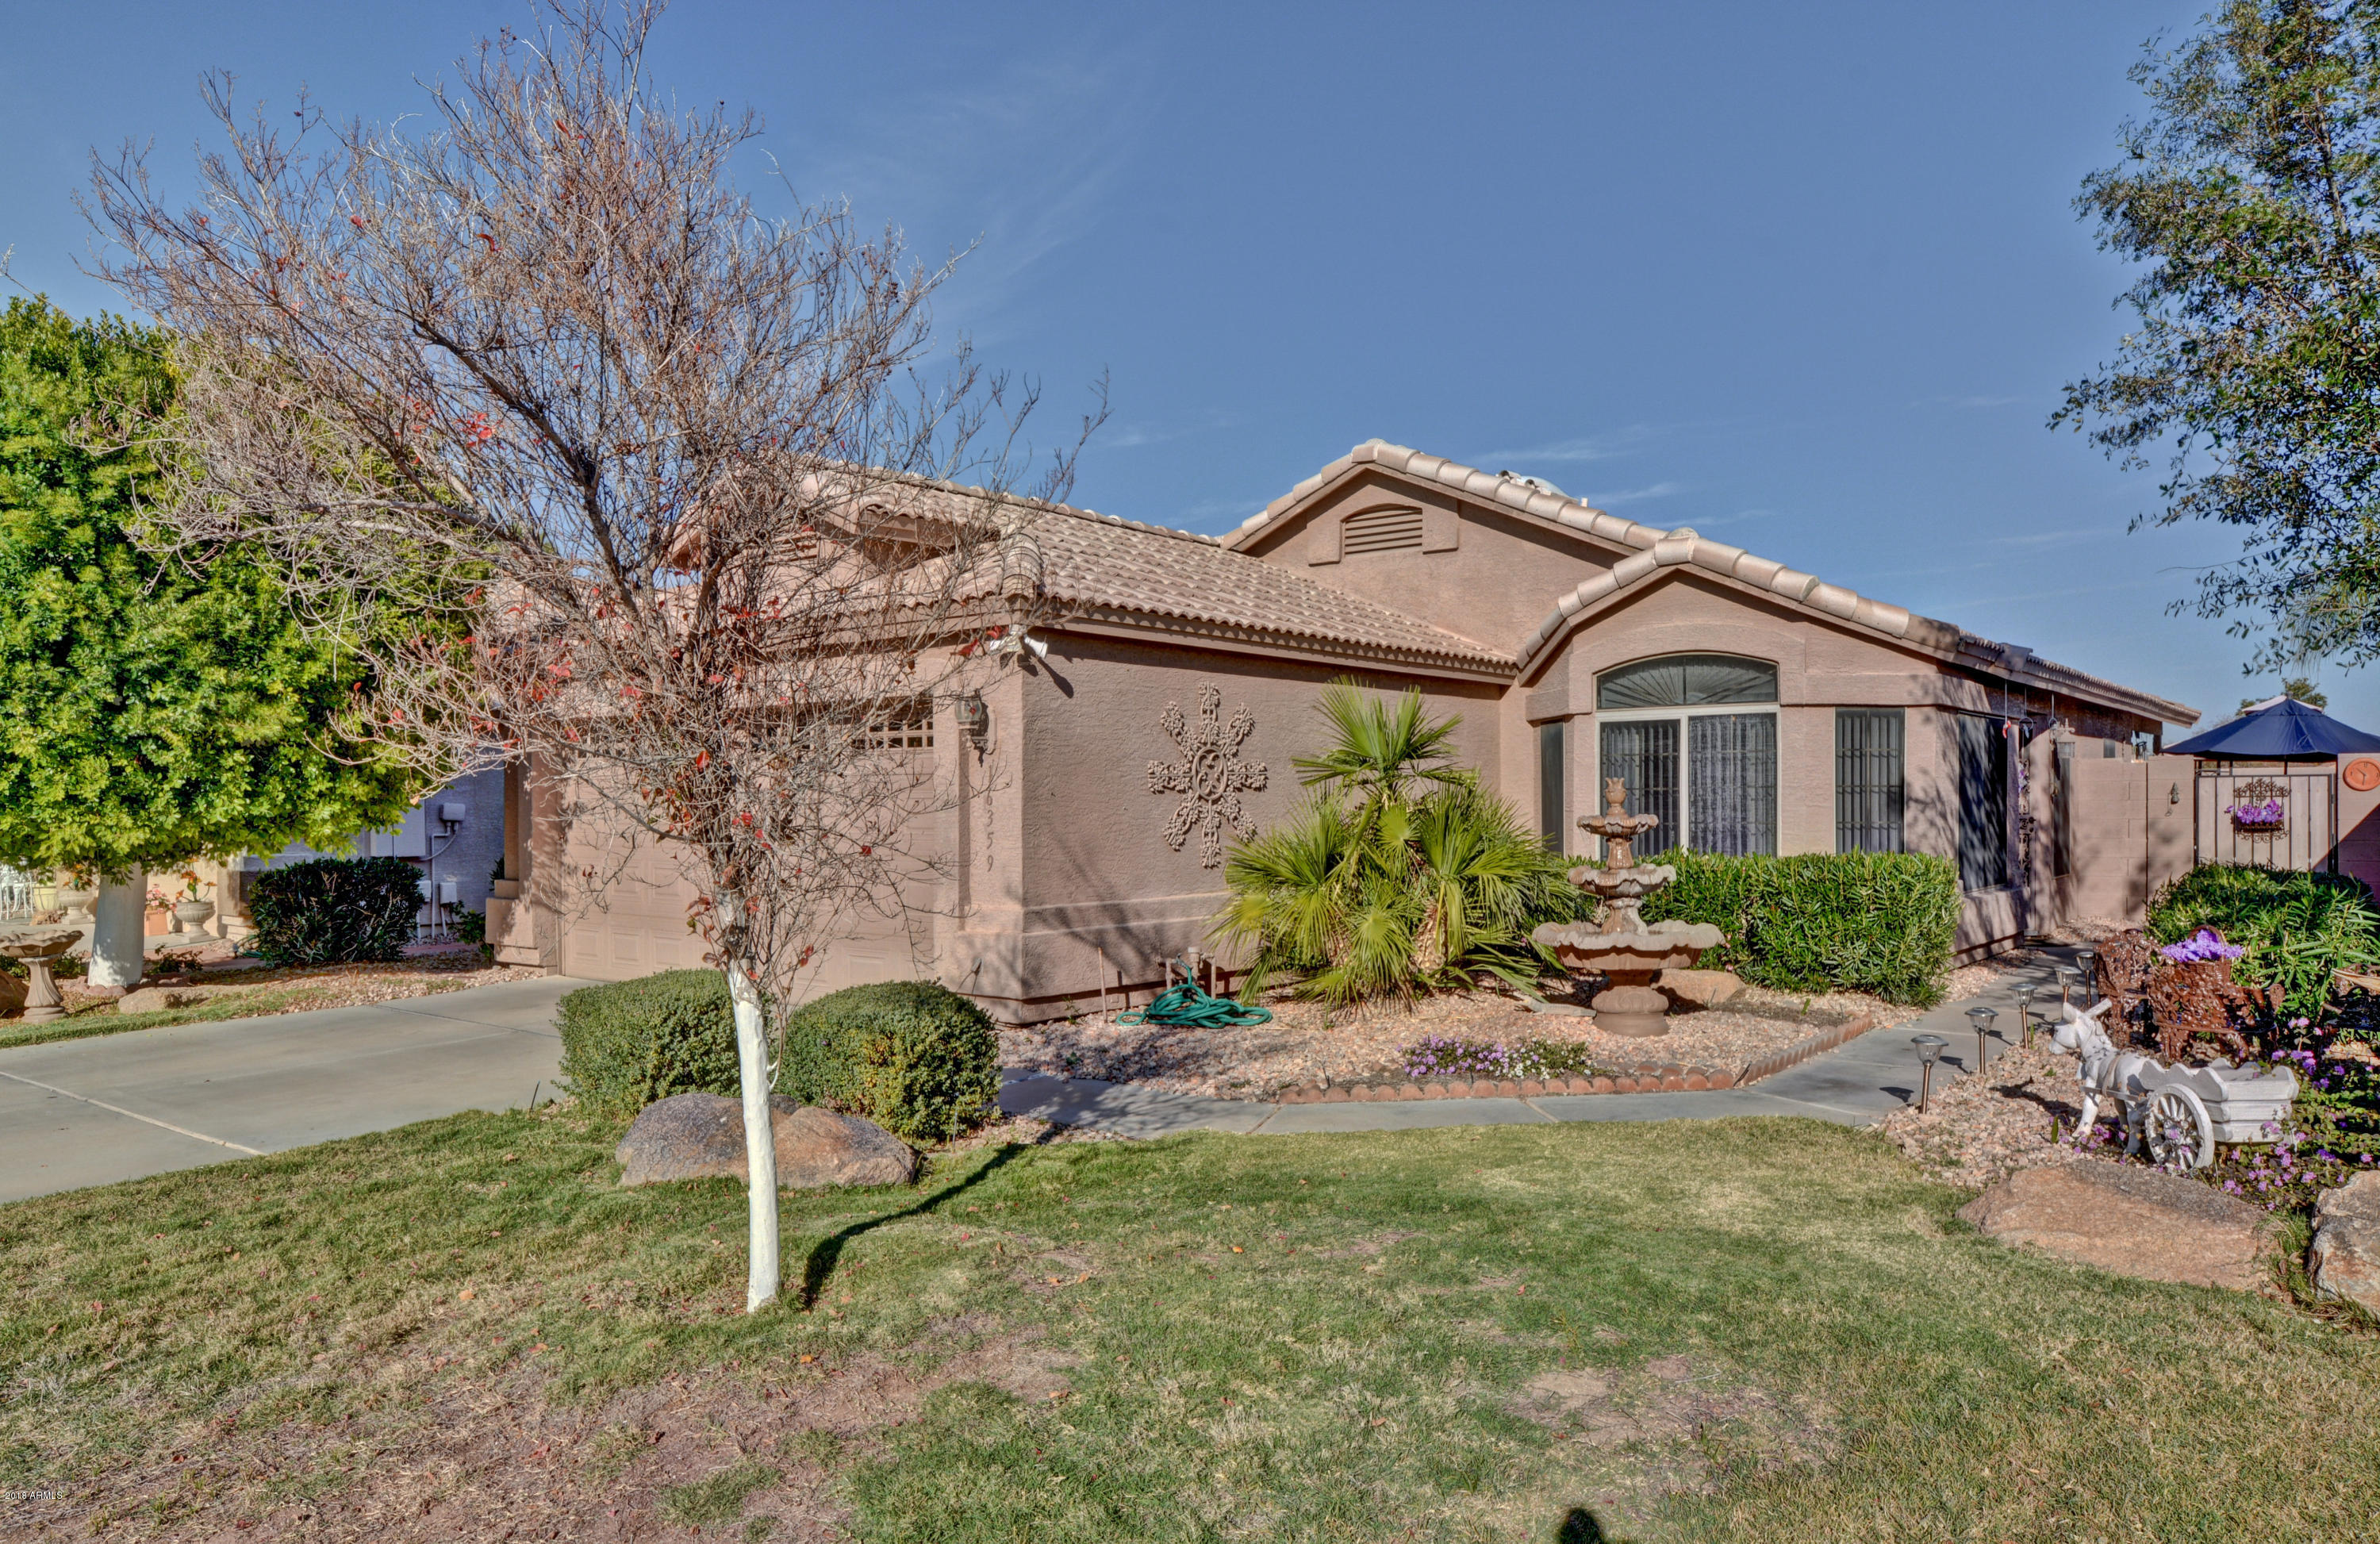 Prime 16359 N Oachs Drive Surprise Az 85374 Home Interior And Landscaping Oversignezvosmurscom